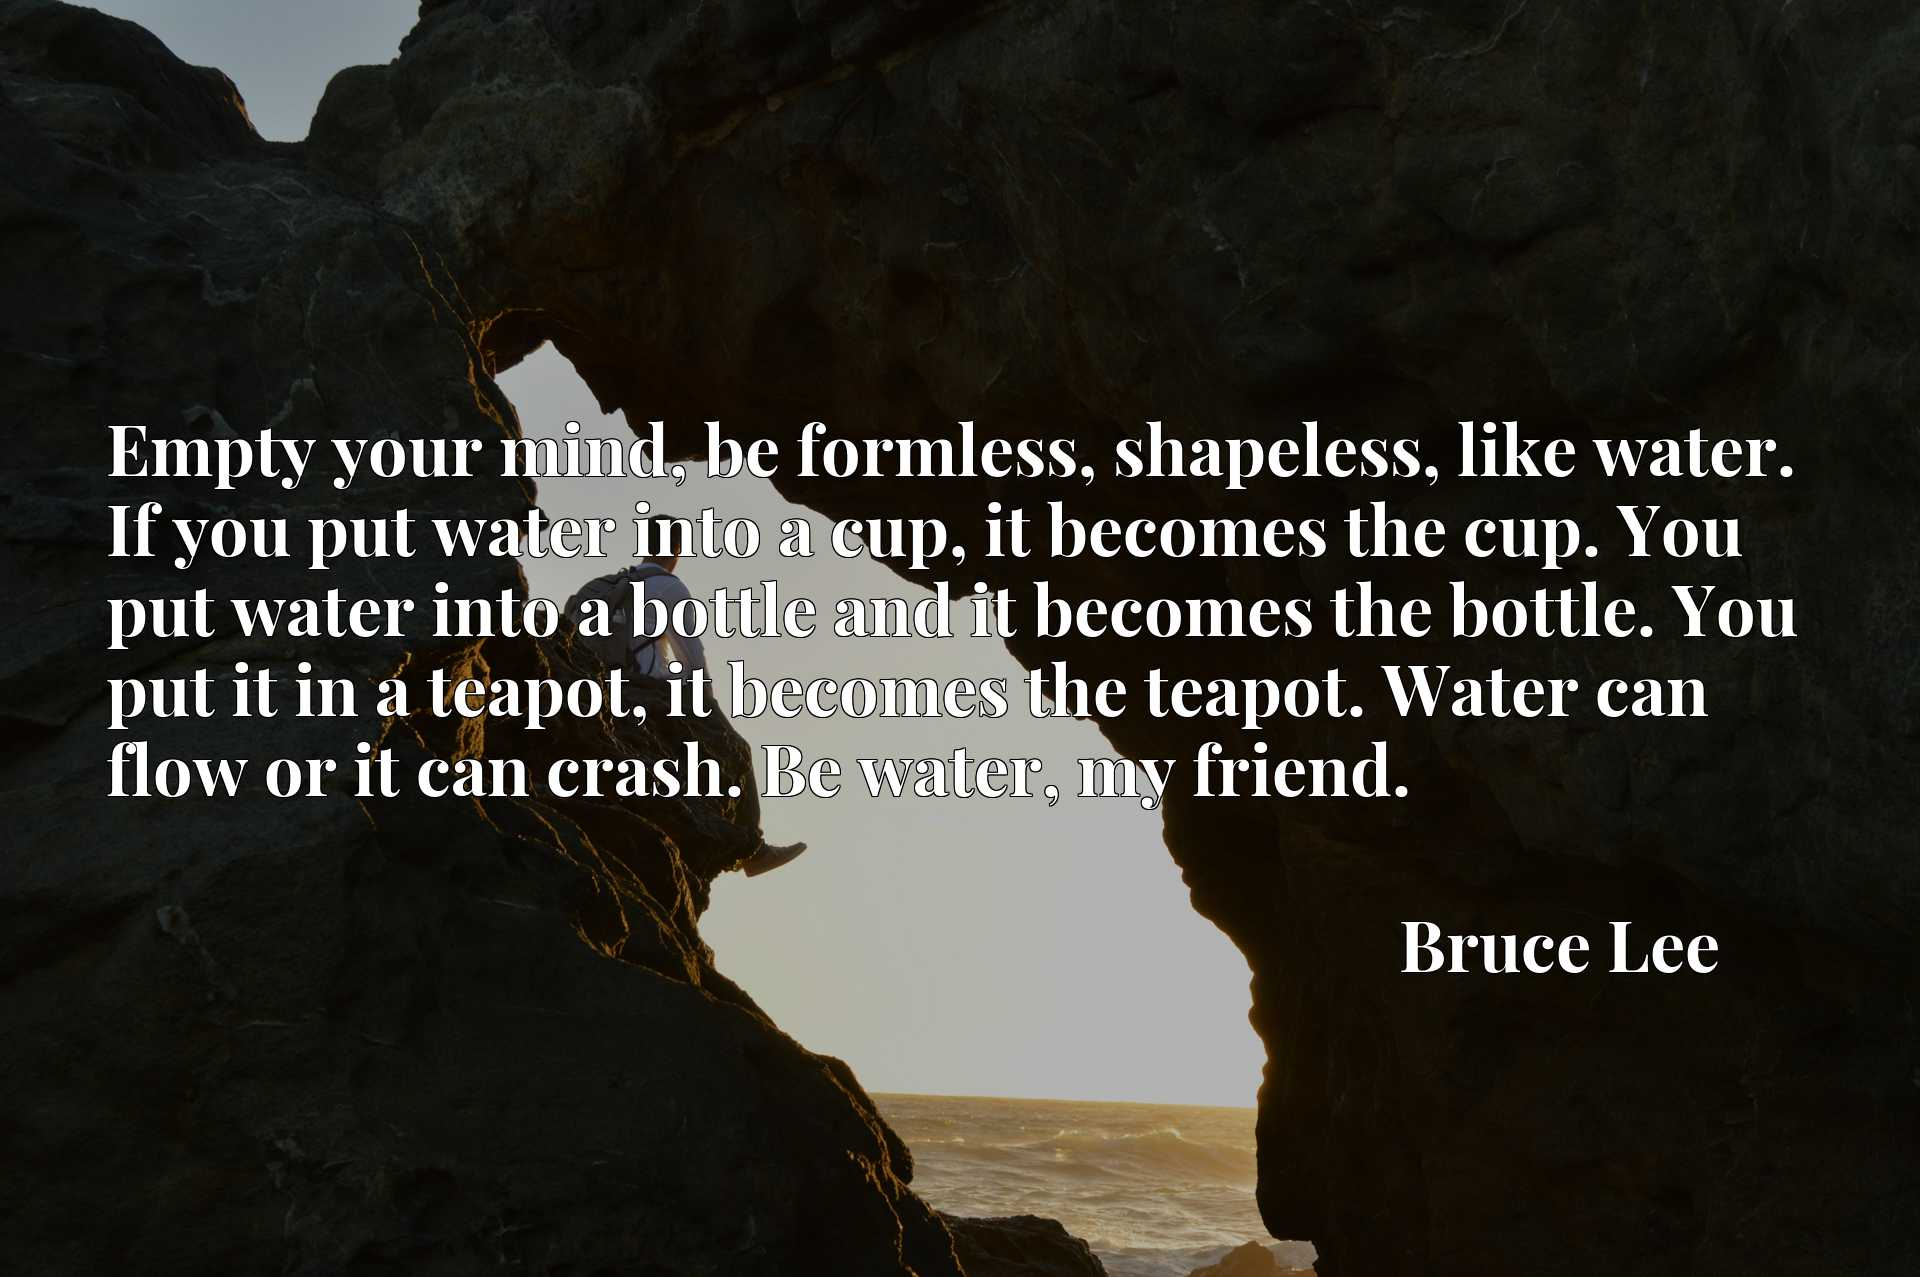 Empty your mind, be formless, shapeless, like water. If you put water into a cup, it becomes the cup. You put water into a bottle and it becomes the bottle. You put it in a teapot, it becomes the teapot. Water can flow or it can crash. Be water, my friend.